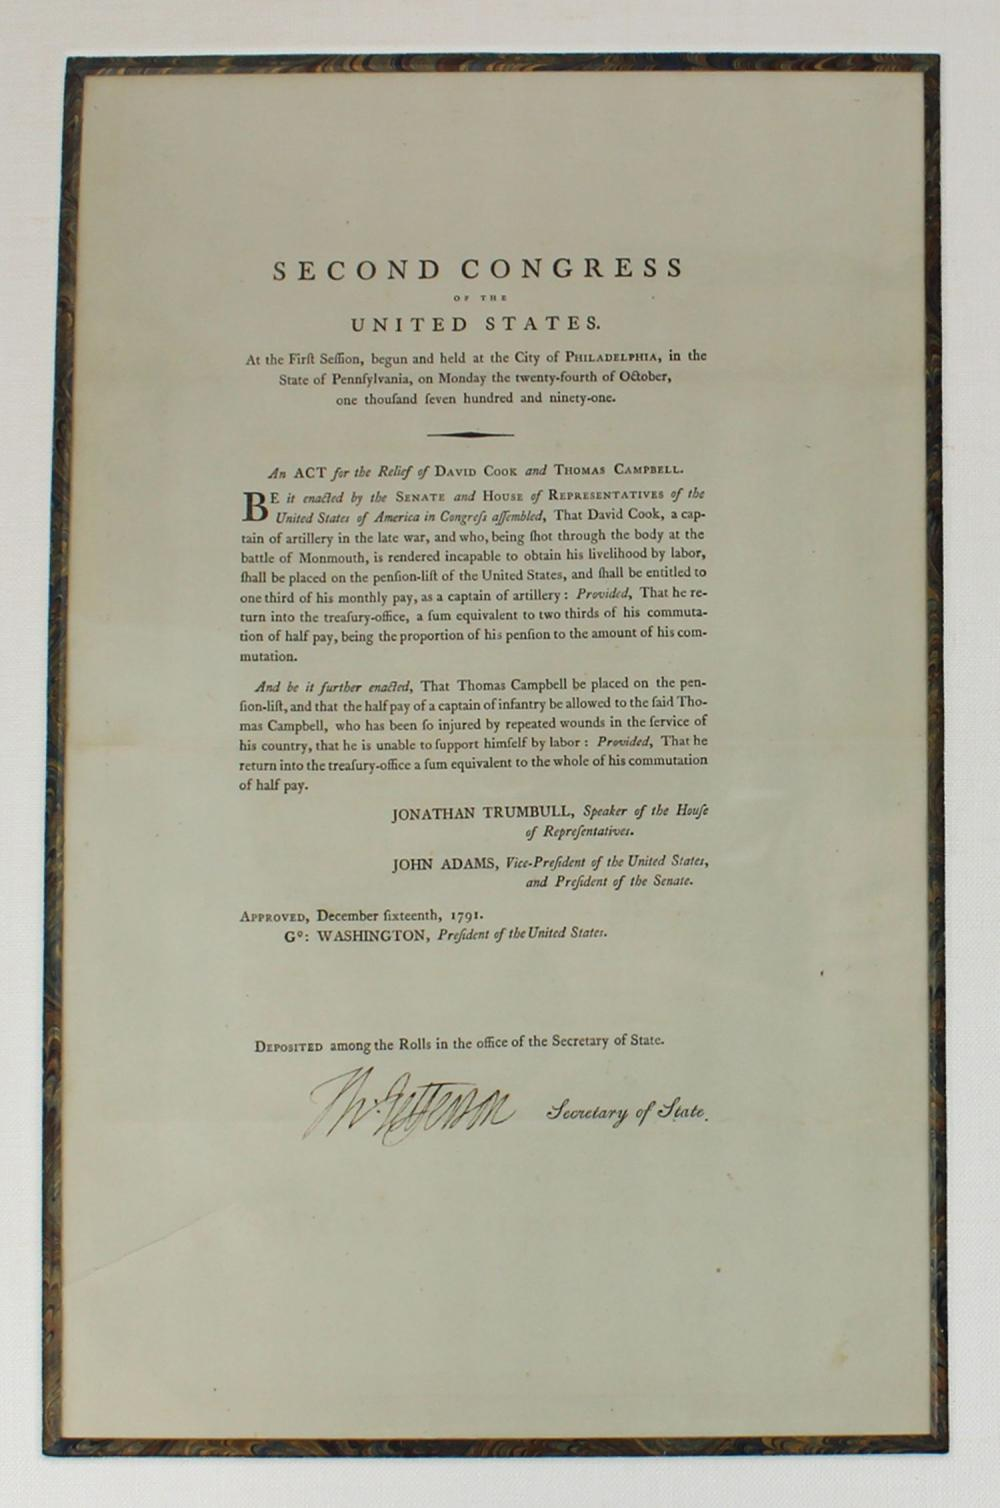 Thomas Jefferson Superb Signed Act of Congress, Fabulous Display